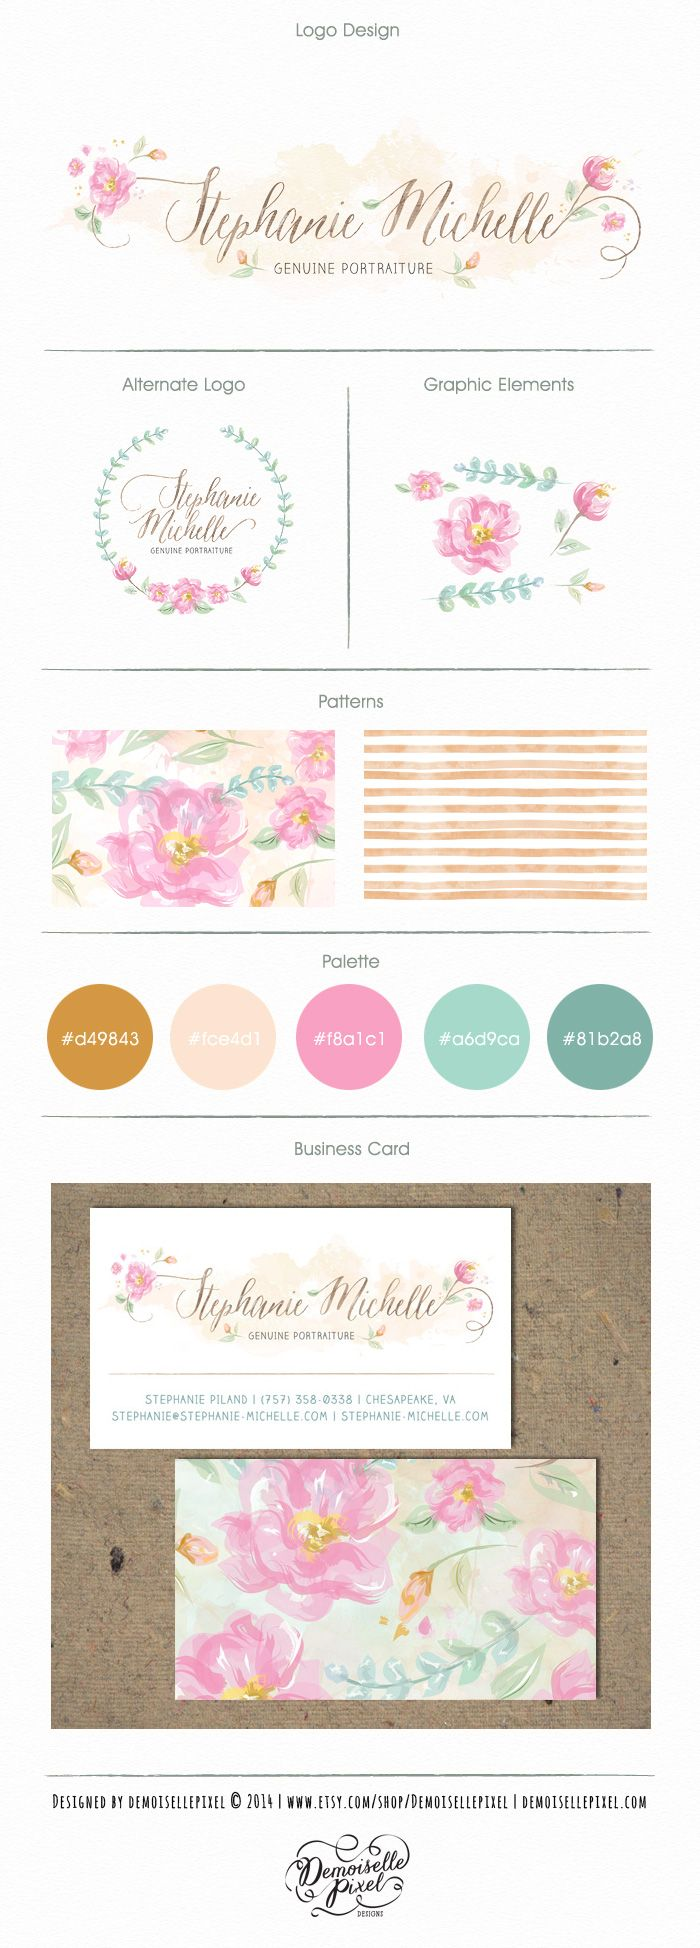 Custom Photography Branding Package with hand painted flowers and a custom calligraphy: https://www.etsy.com/listing/156334805/custom-brand-identity-package-custom